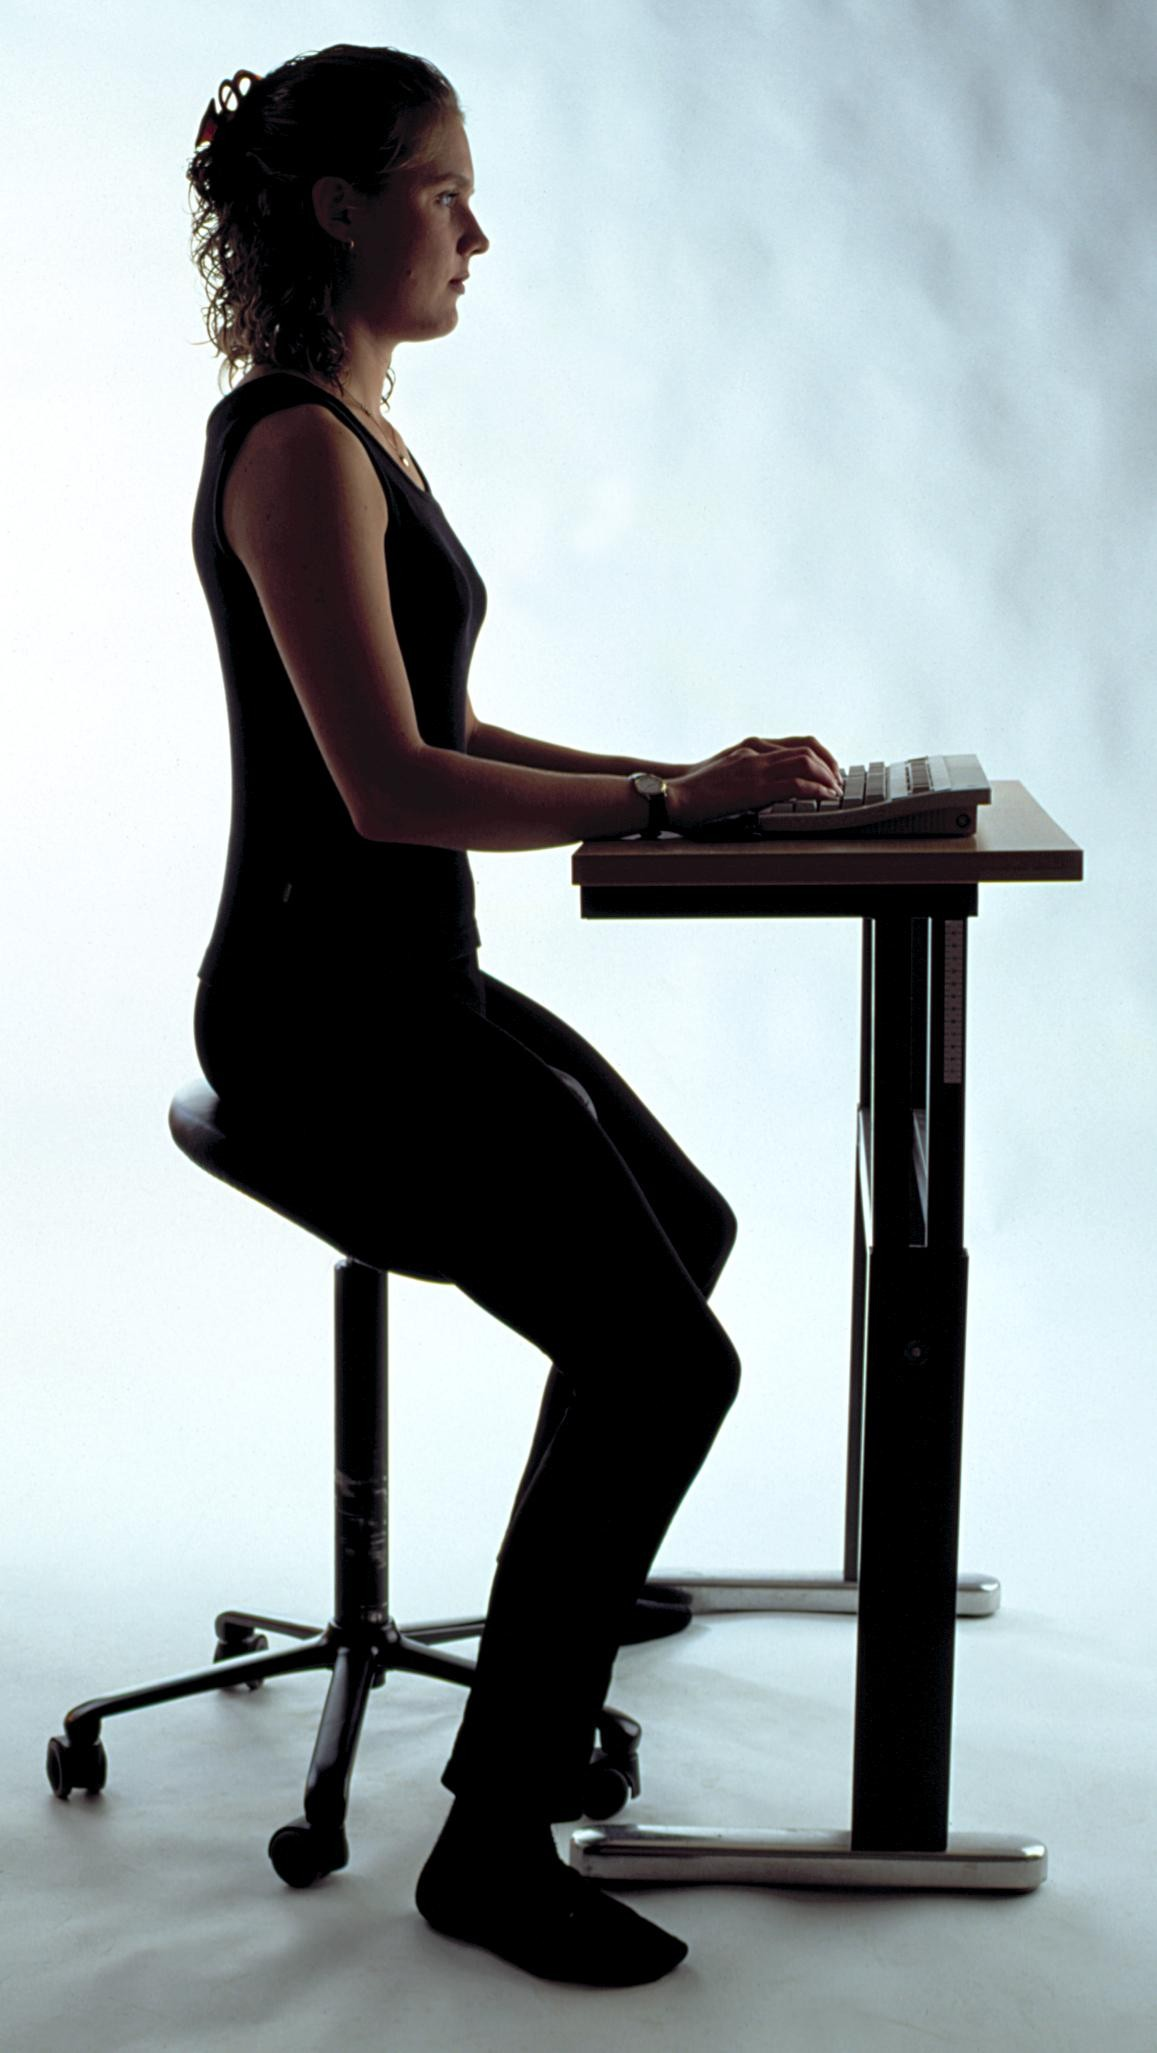 Woman practicing a good sitting posture.